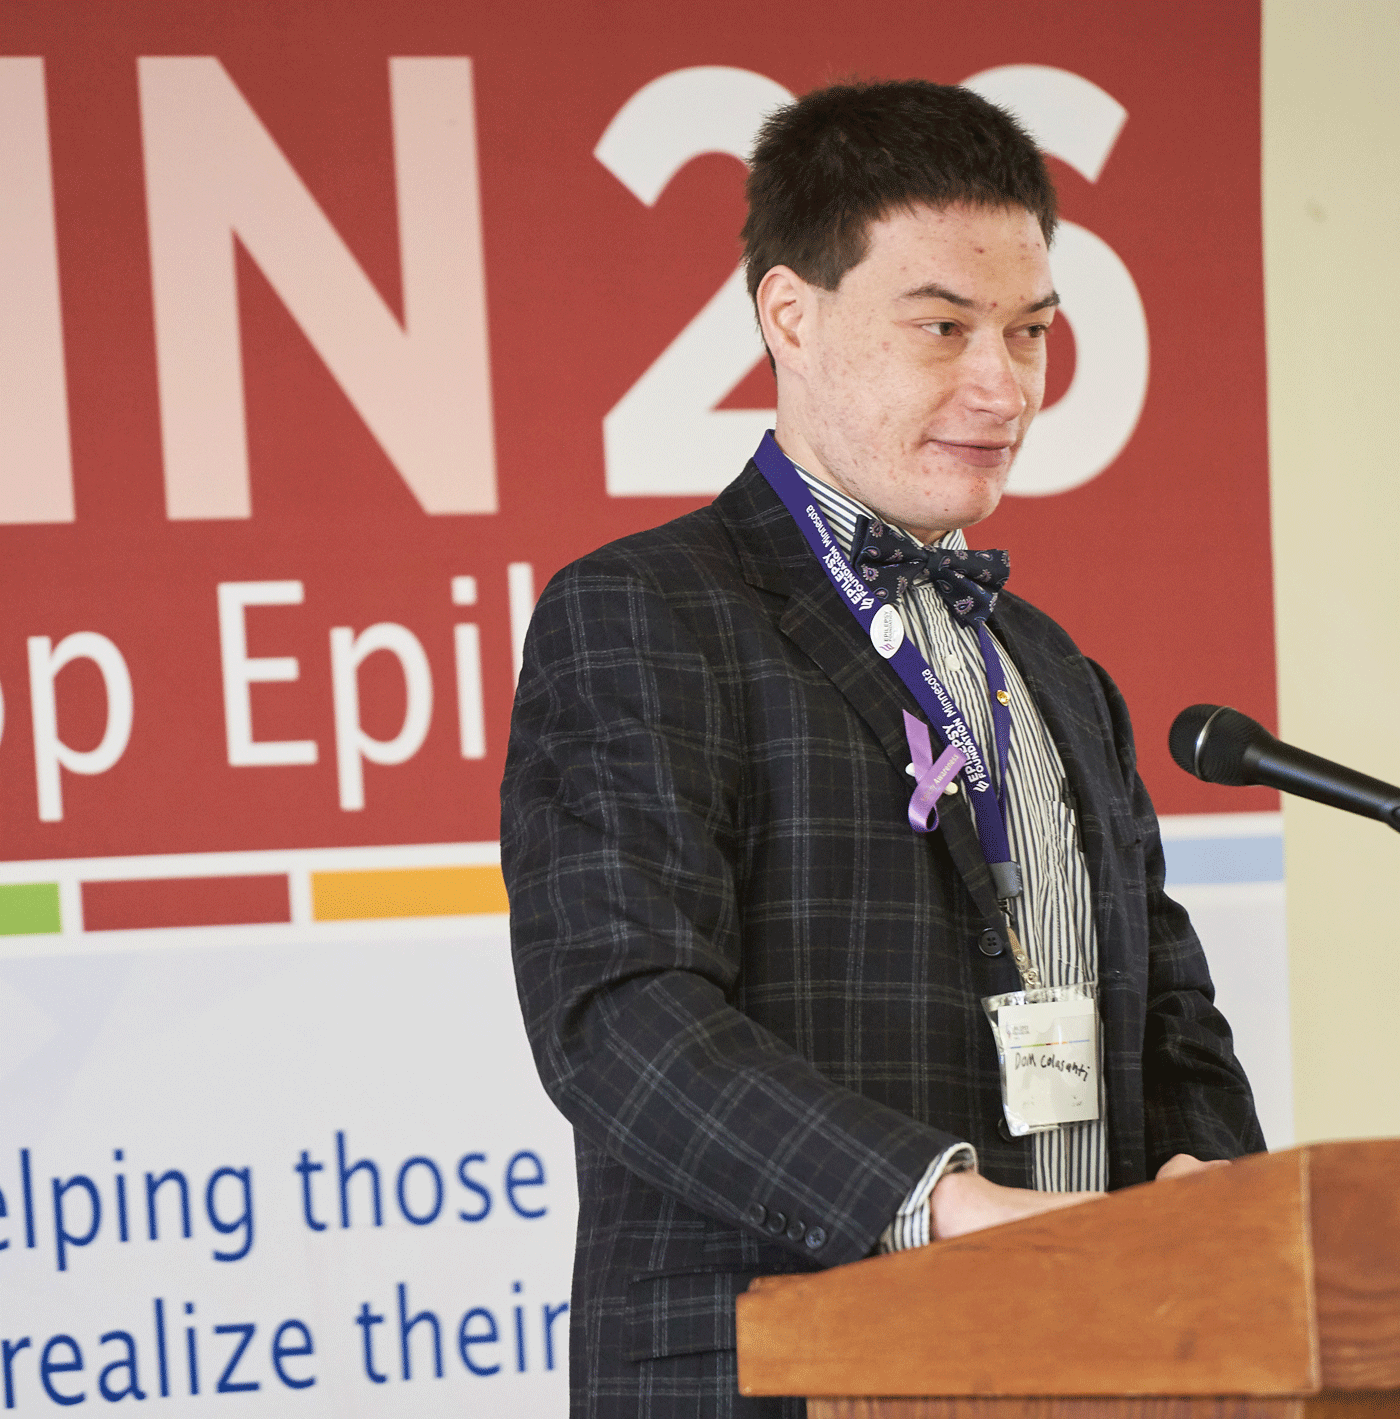 A young man with black hair and a black blazer adorned with purple ribbons stands at a podium to seppech